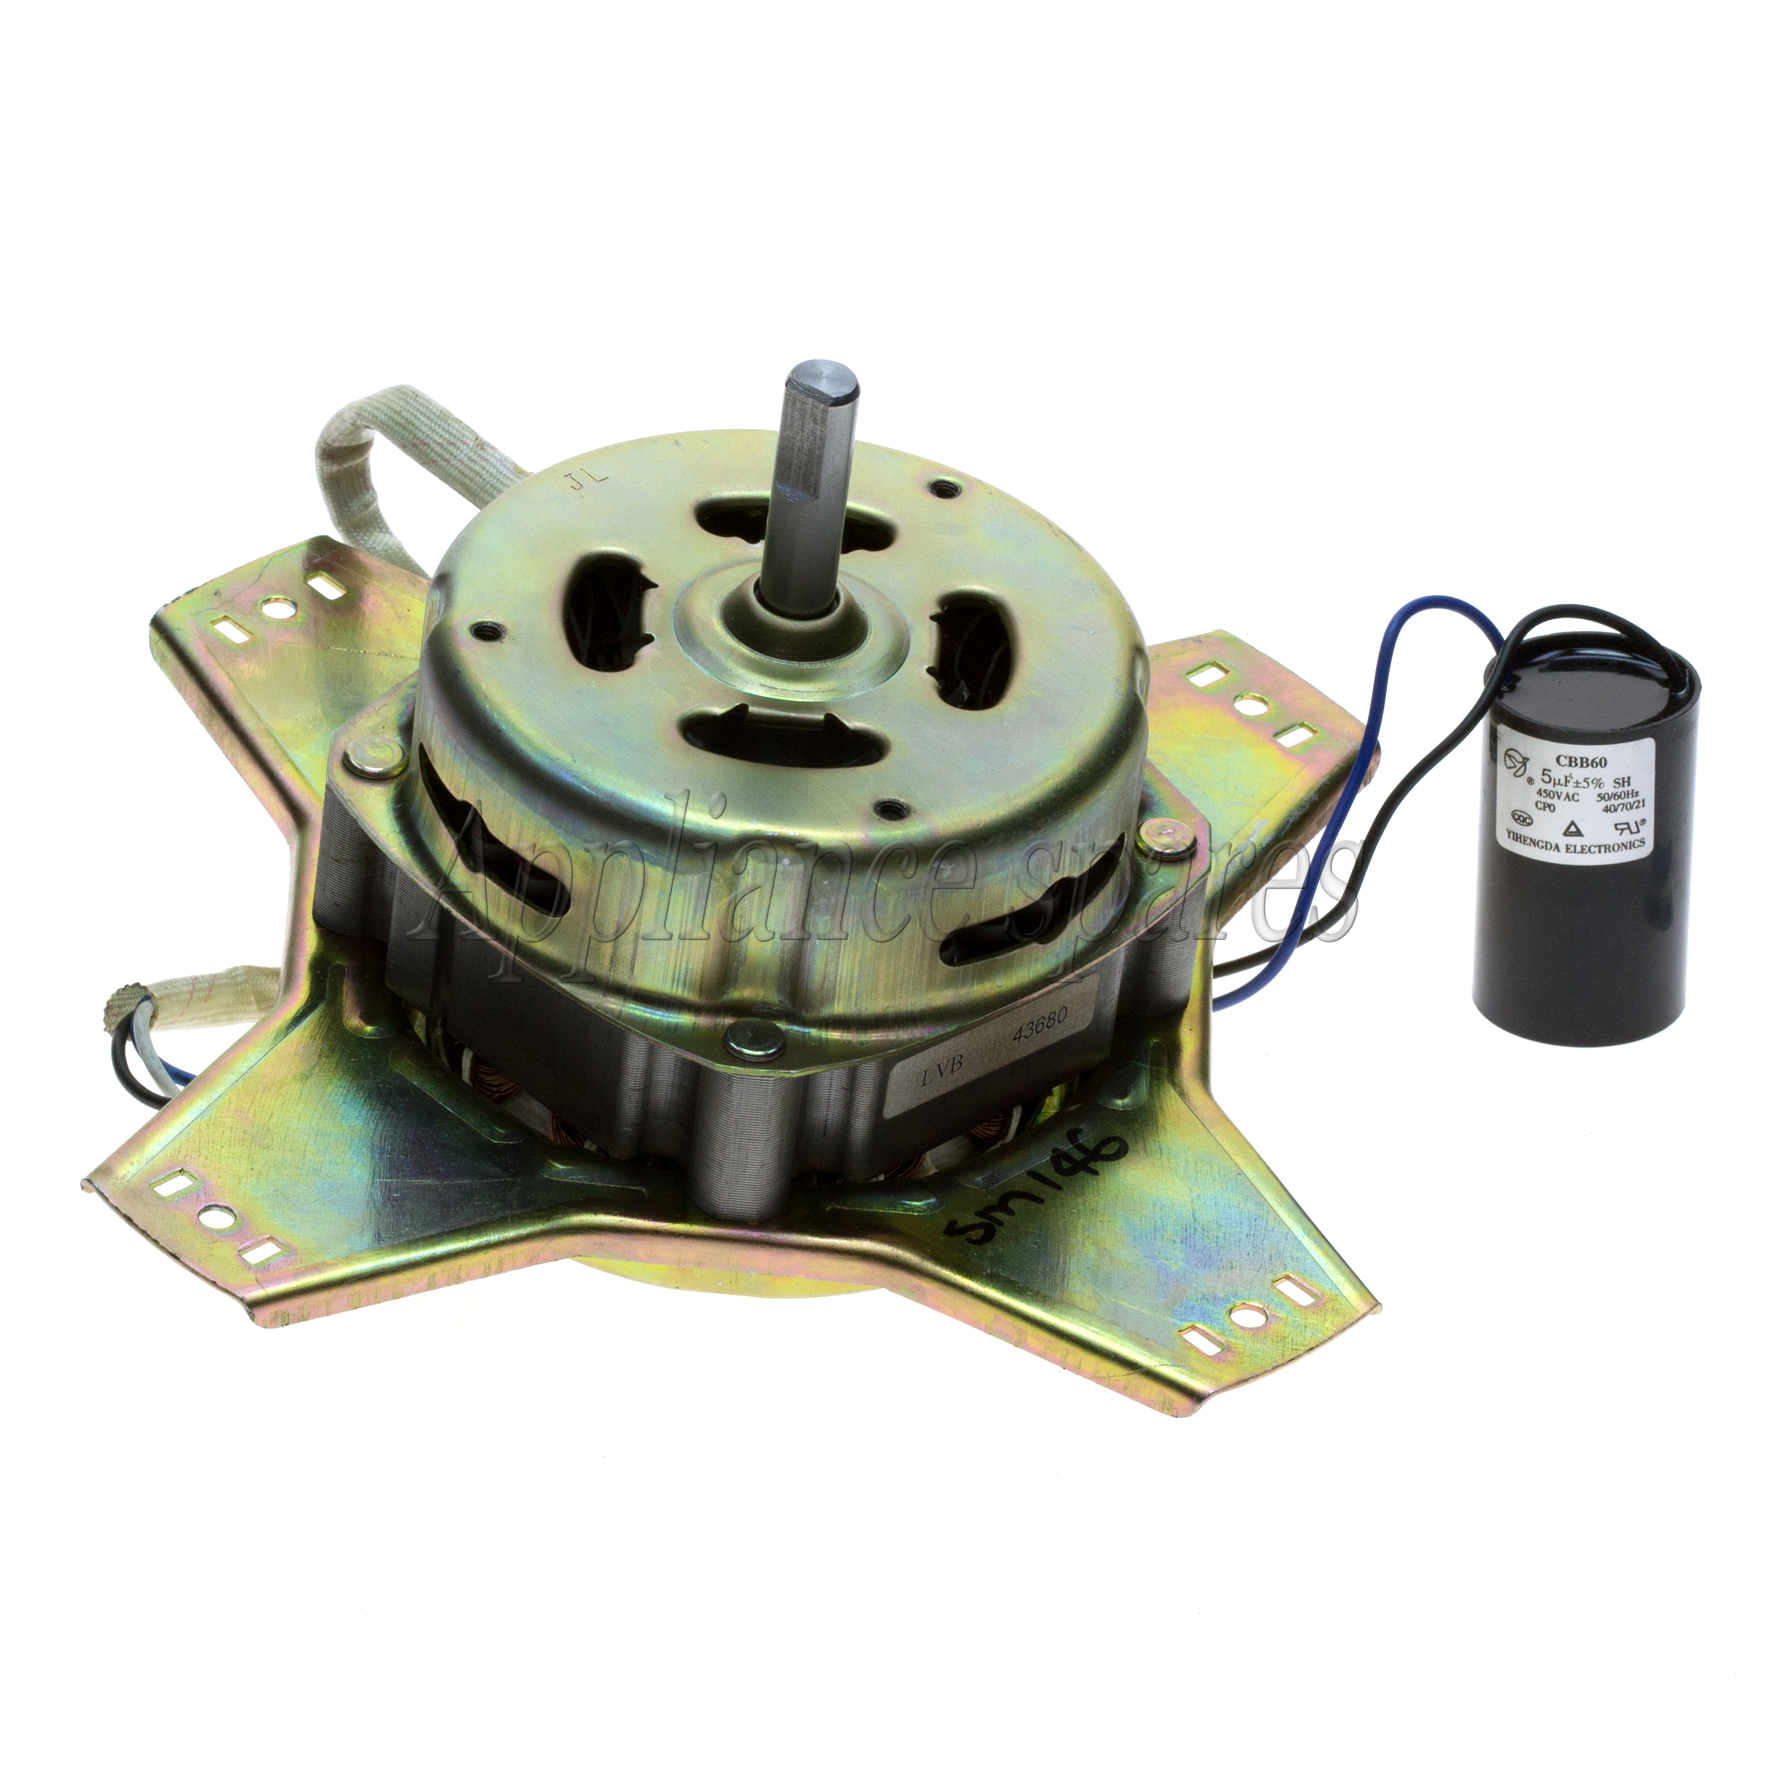 Washing machine motor wiring impremedia